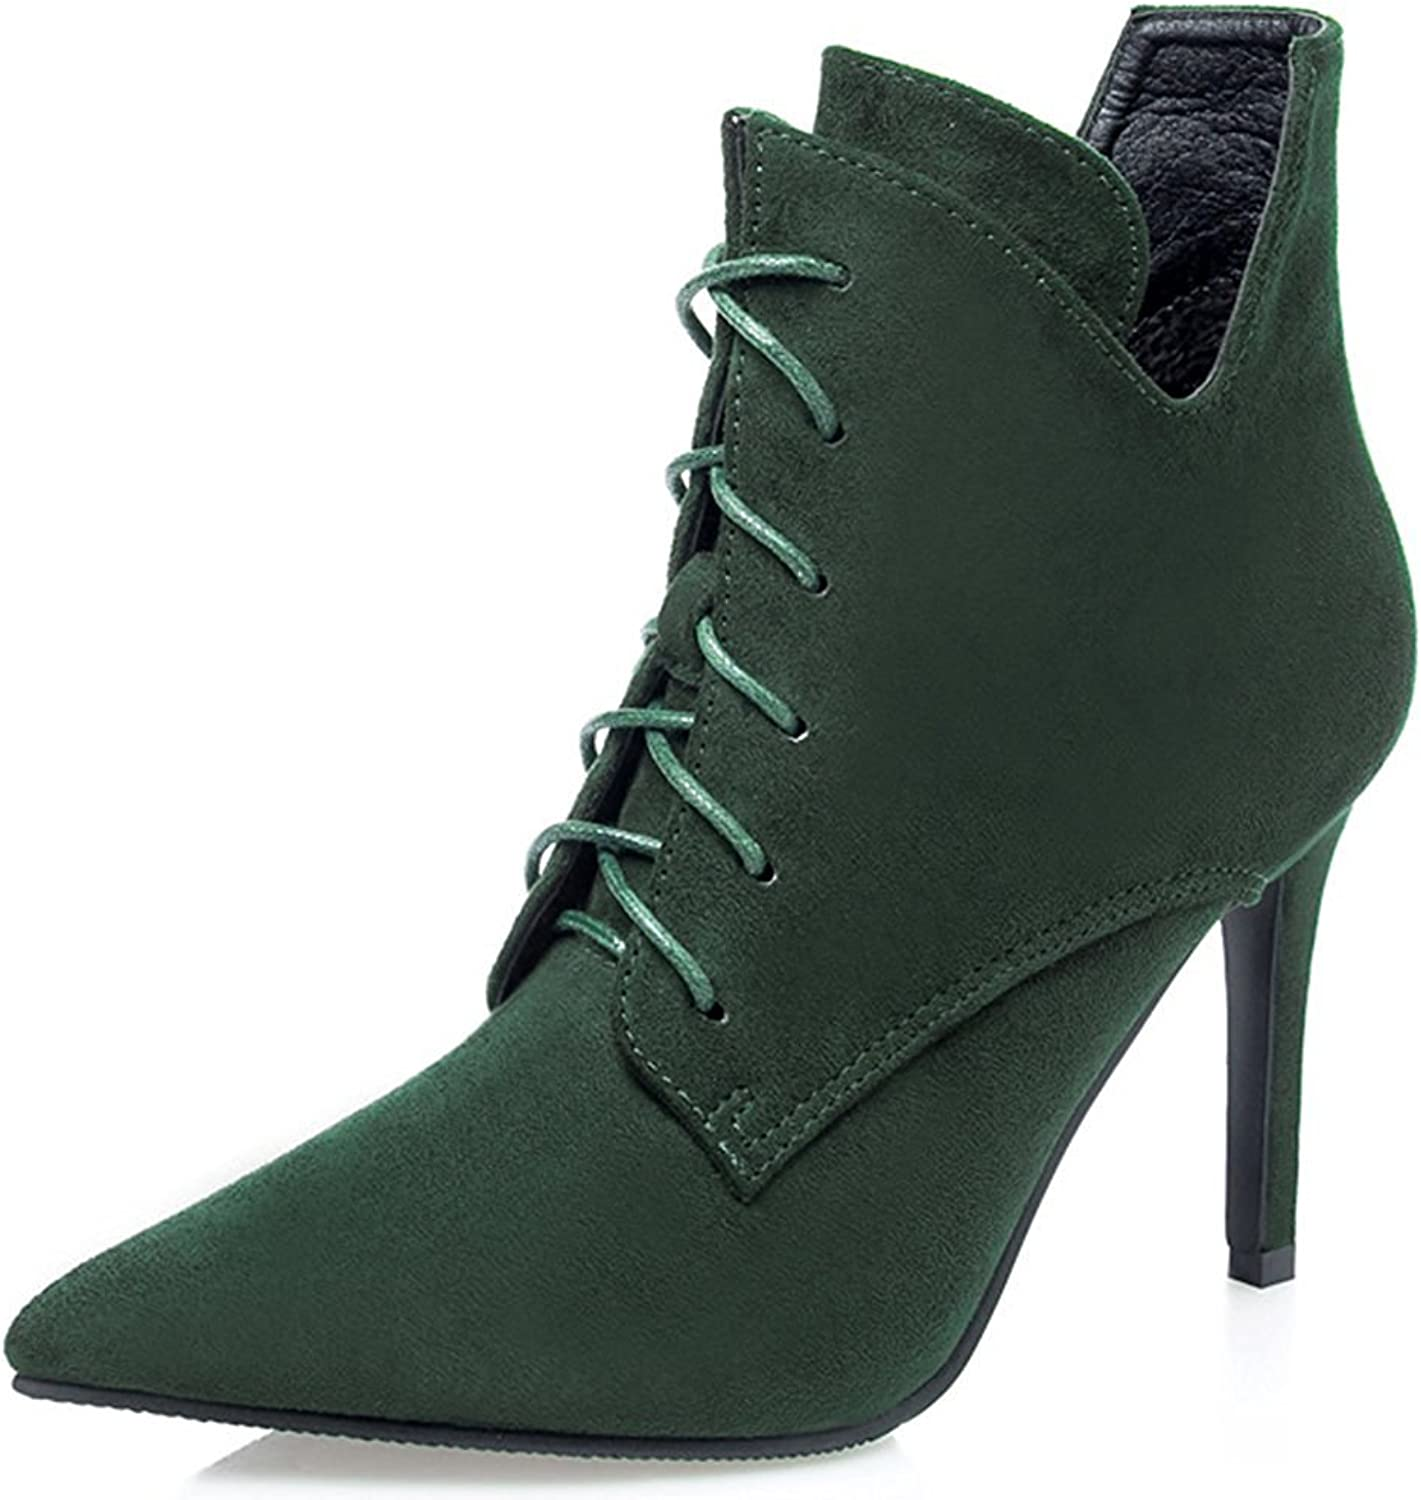 Colnsky Women's Sexy Pointed Toe Lace-up Booties Stiletto High Heels Ankle Boots